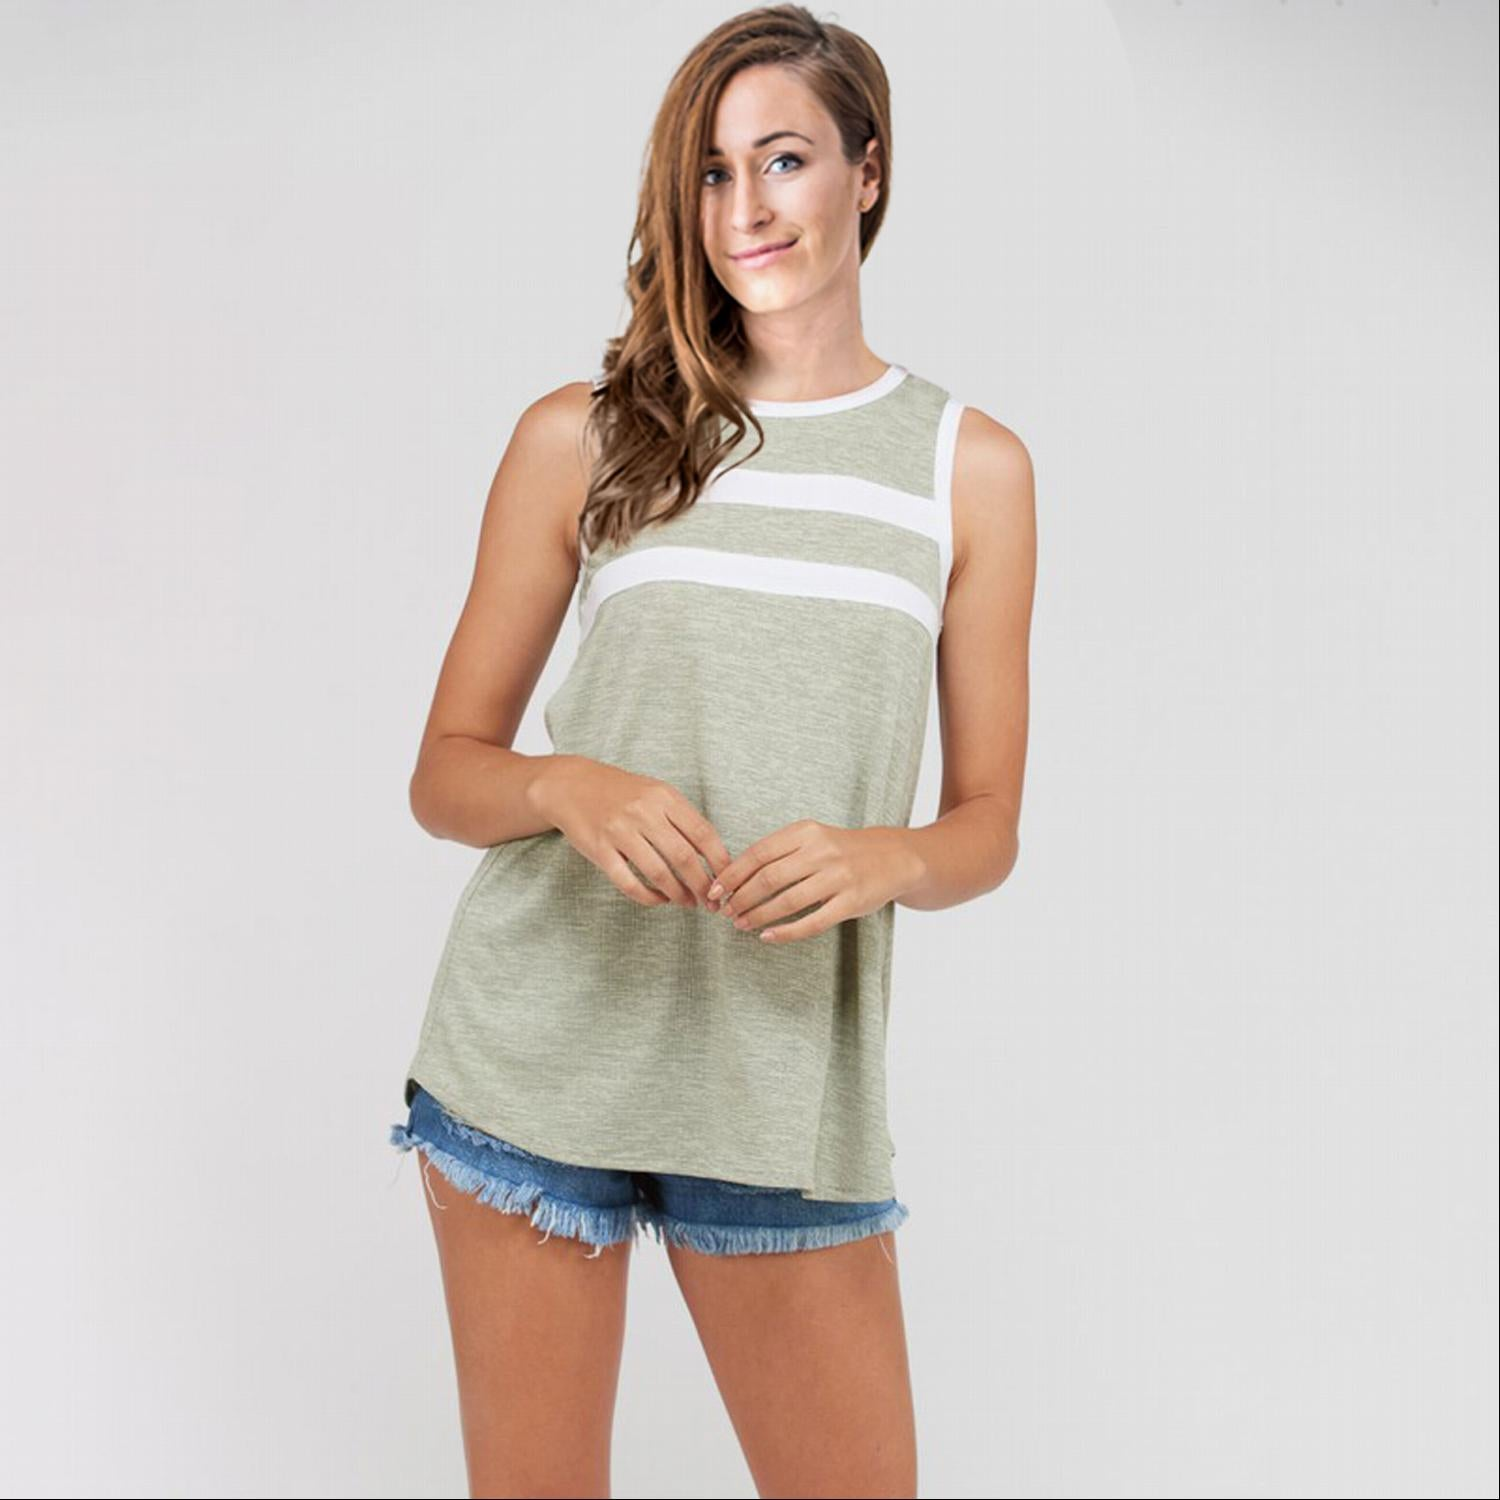 Tan Striped Tank